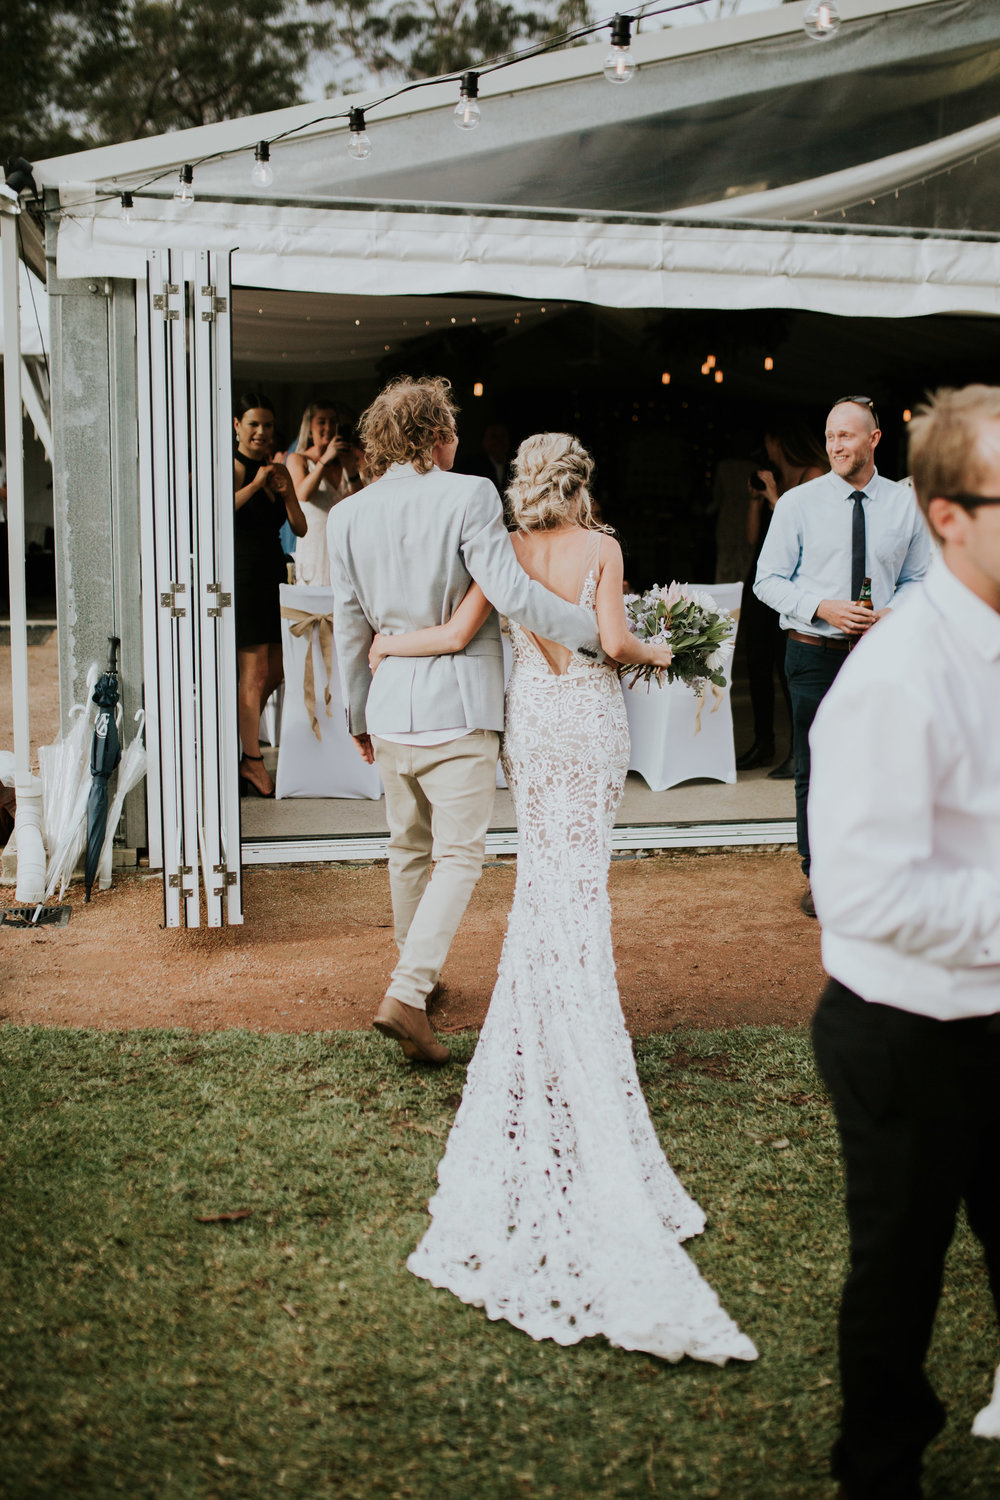 Jesse+Matt+Kangaroo+Valley+Wildwood+Boho+Relaxed+wedding+-181.jpg